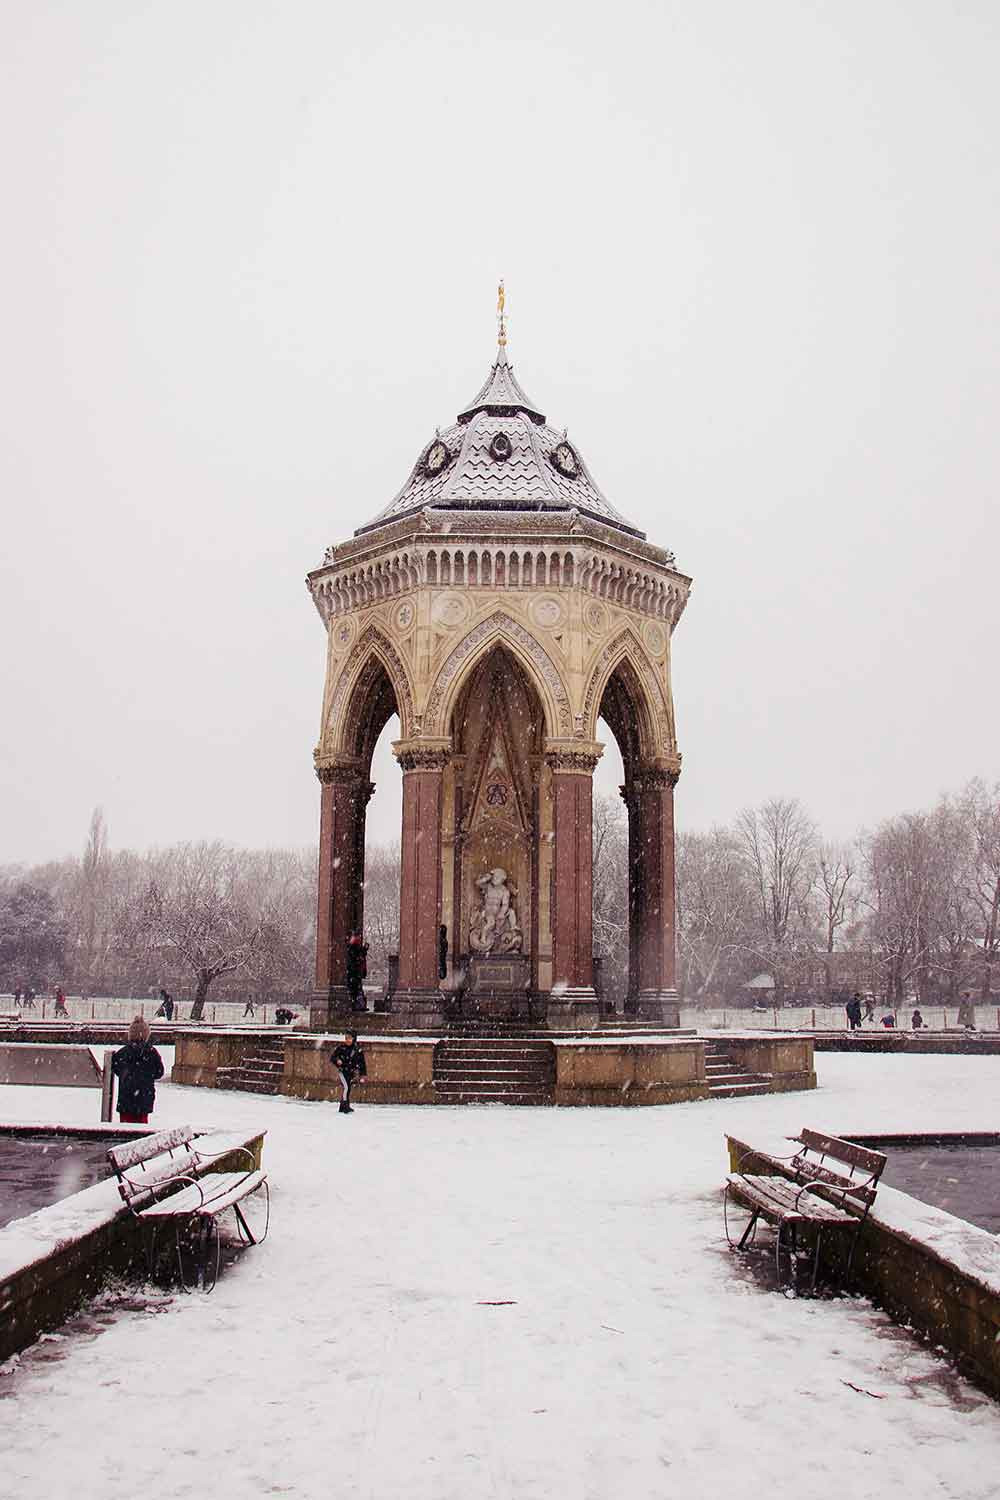 Coutts Fountain, Victoria Park in the snow, East London, 2021